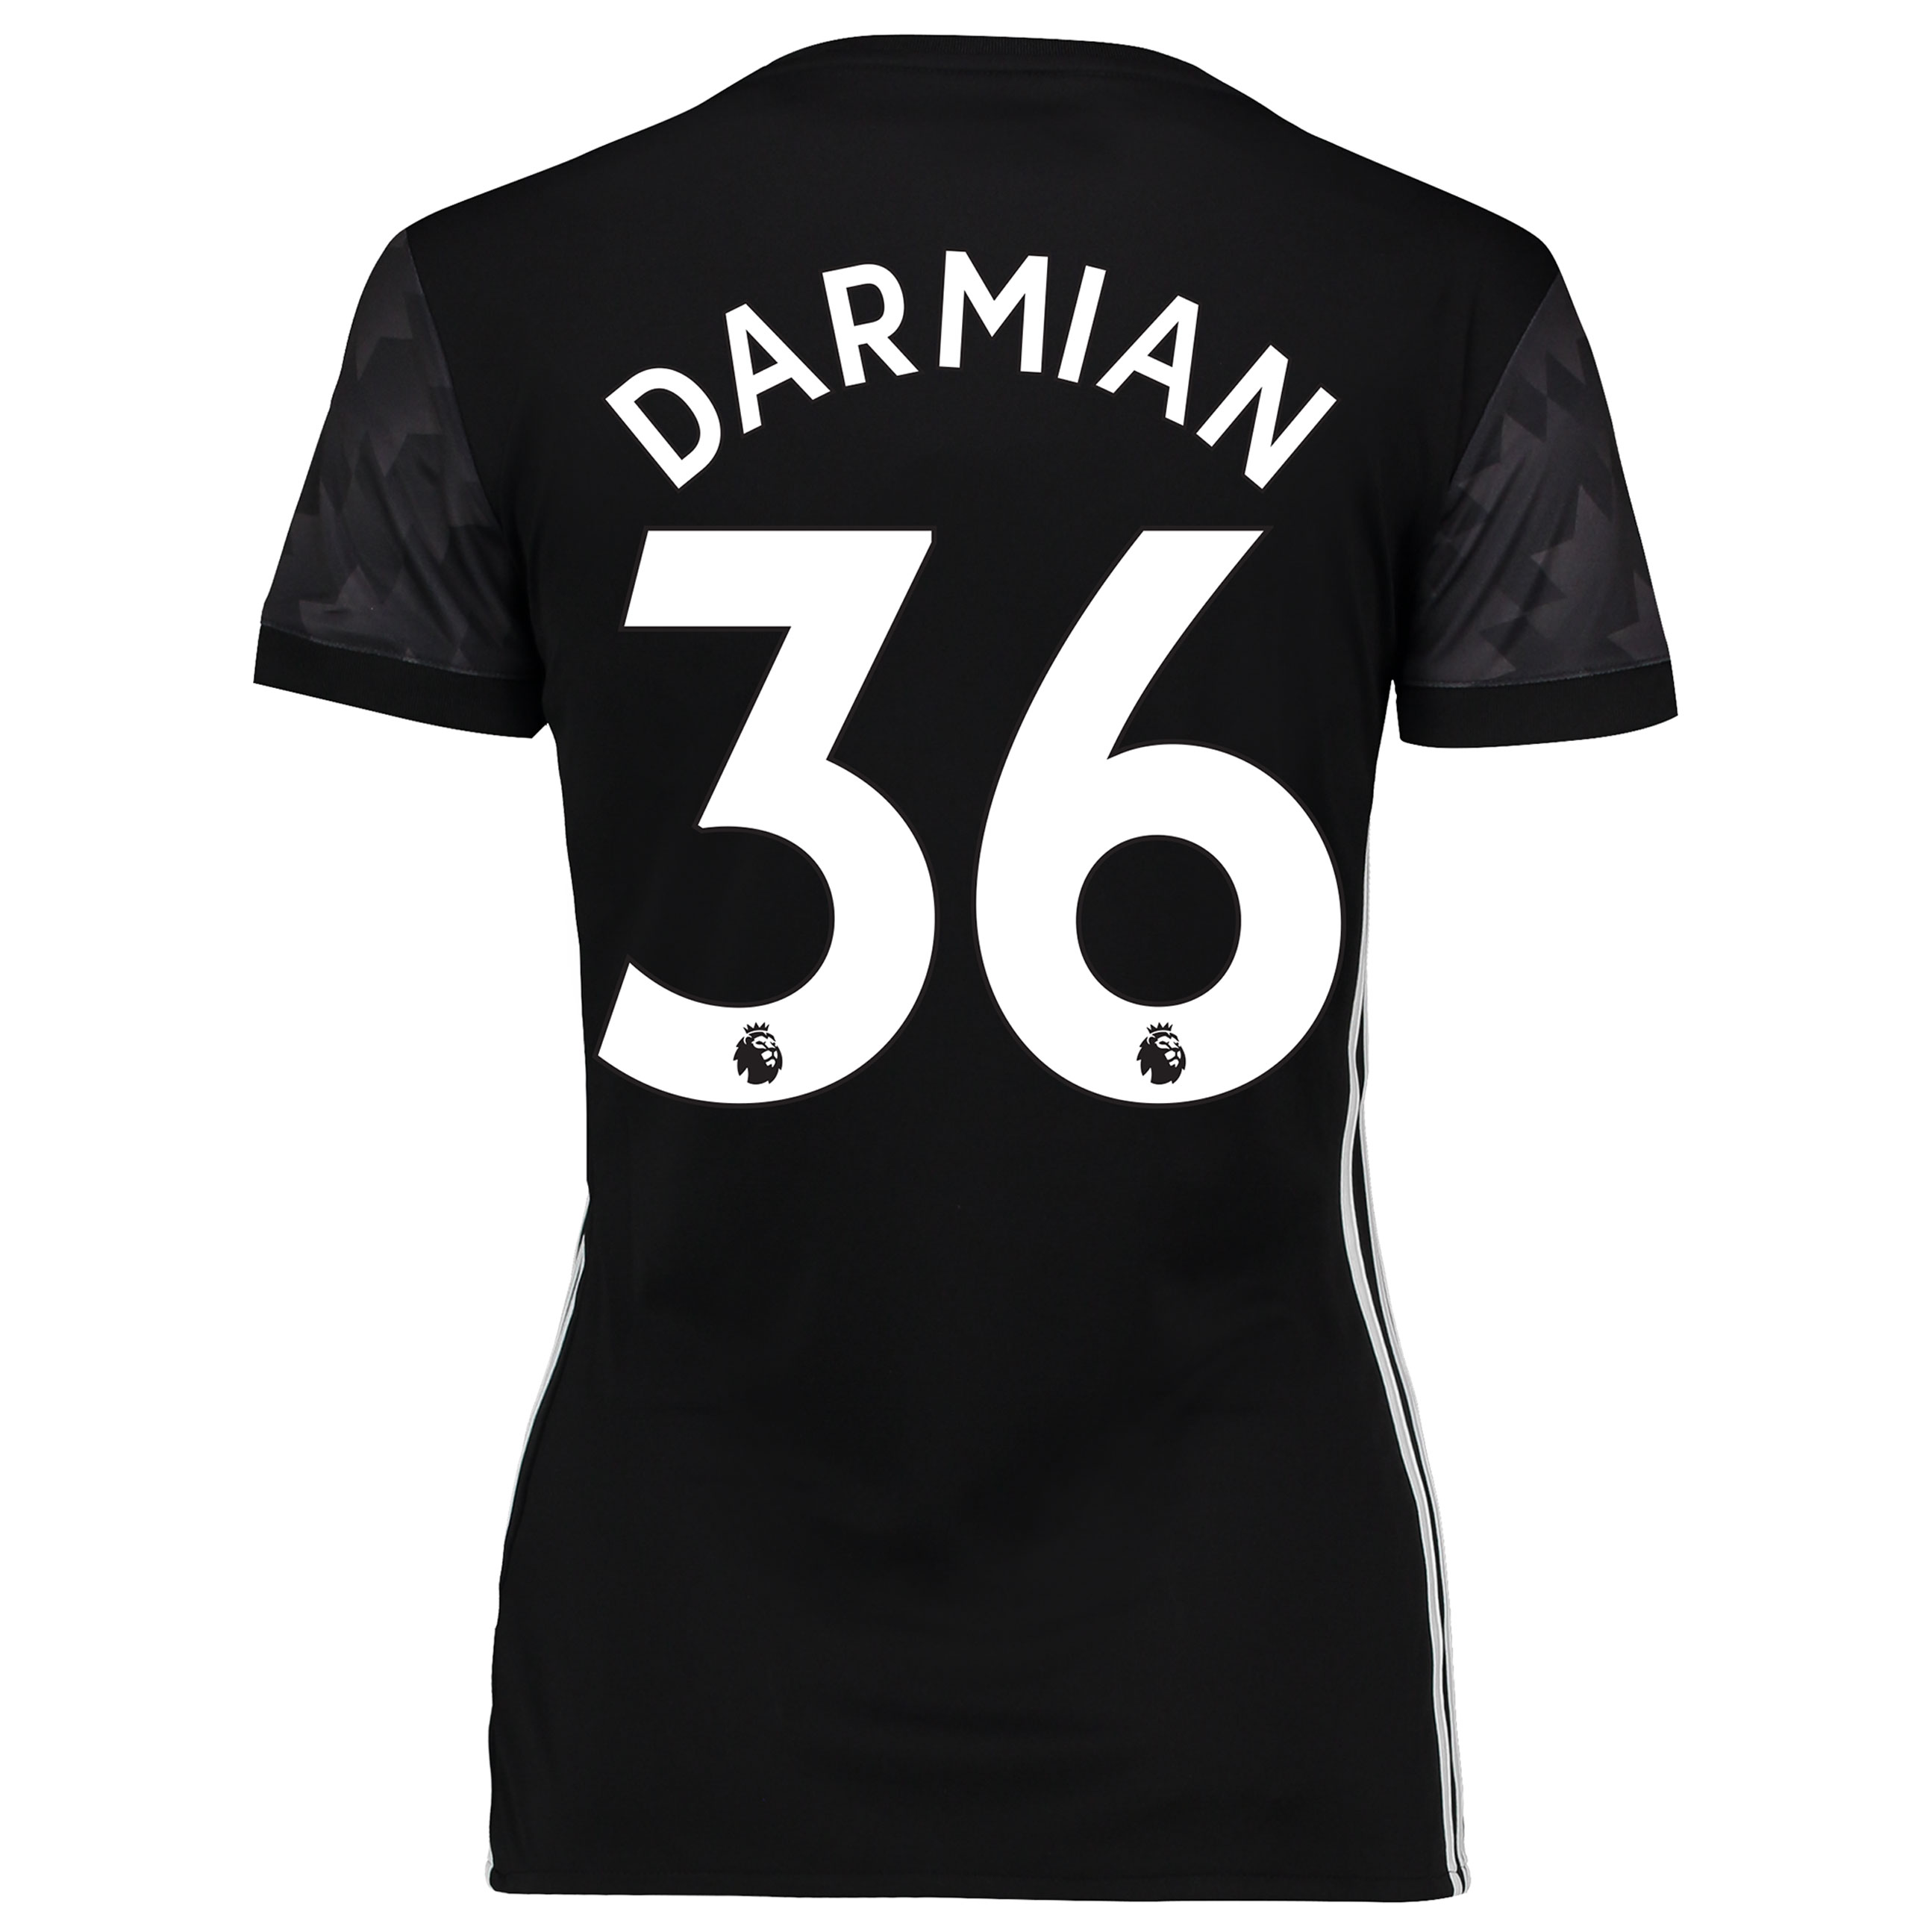 Manchester United Away Shirt 2017-18 - Womens with Darmian 36 printing